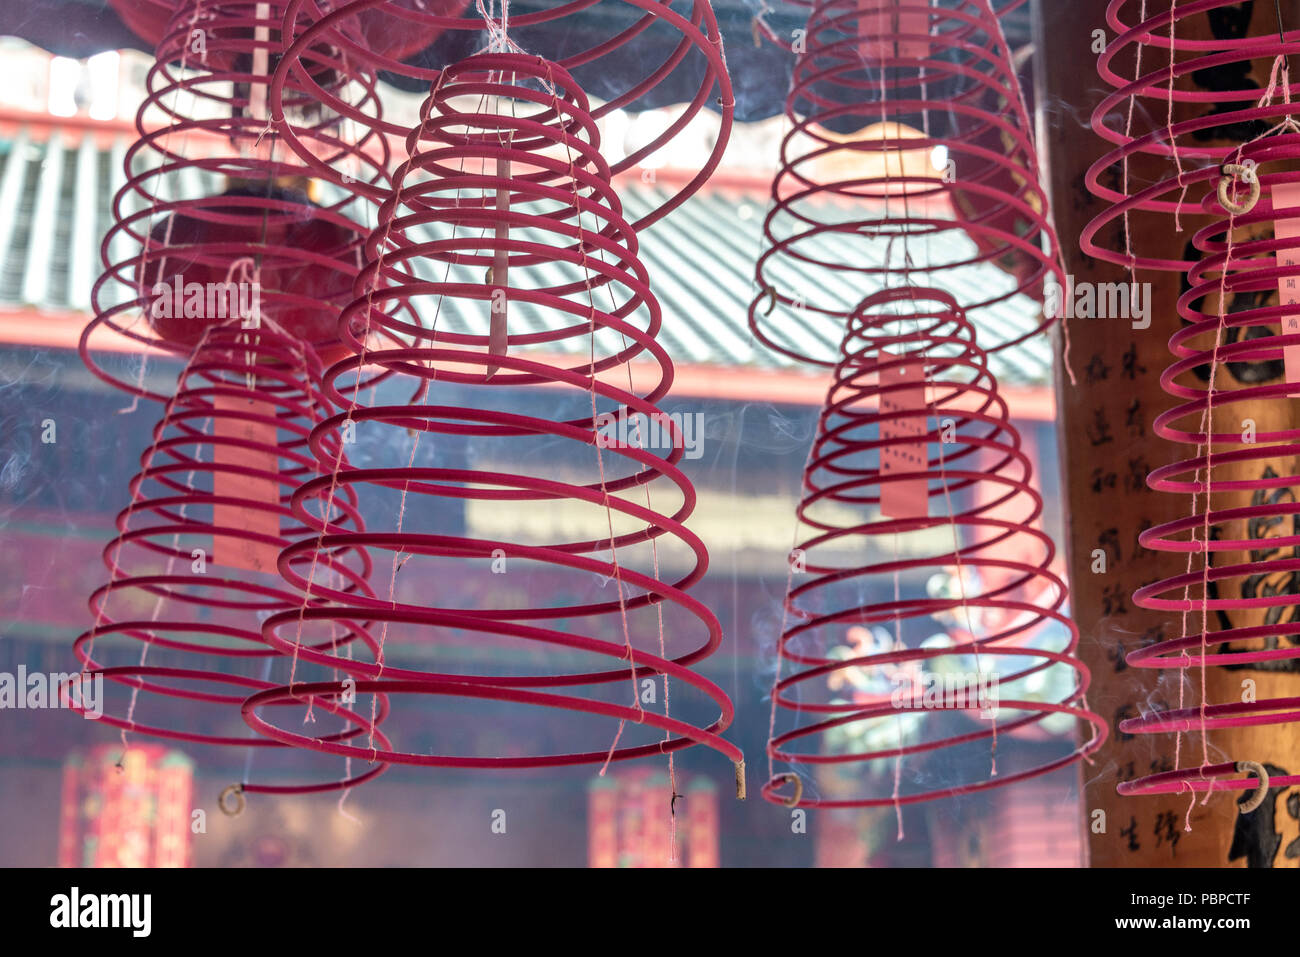 Burning incense coils at a Taoist temple in Kuala Lumpur - Stock Image